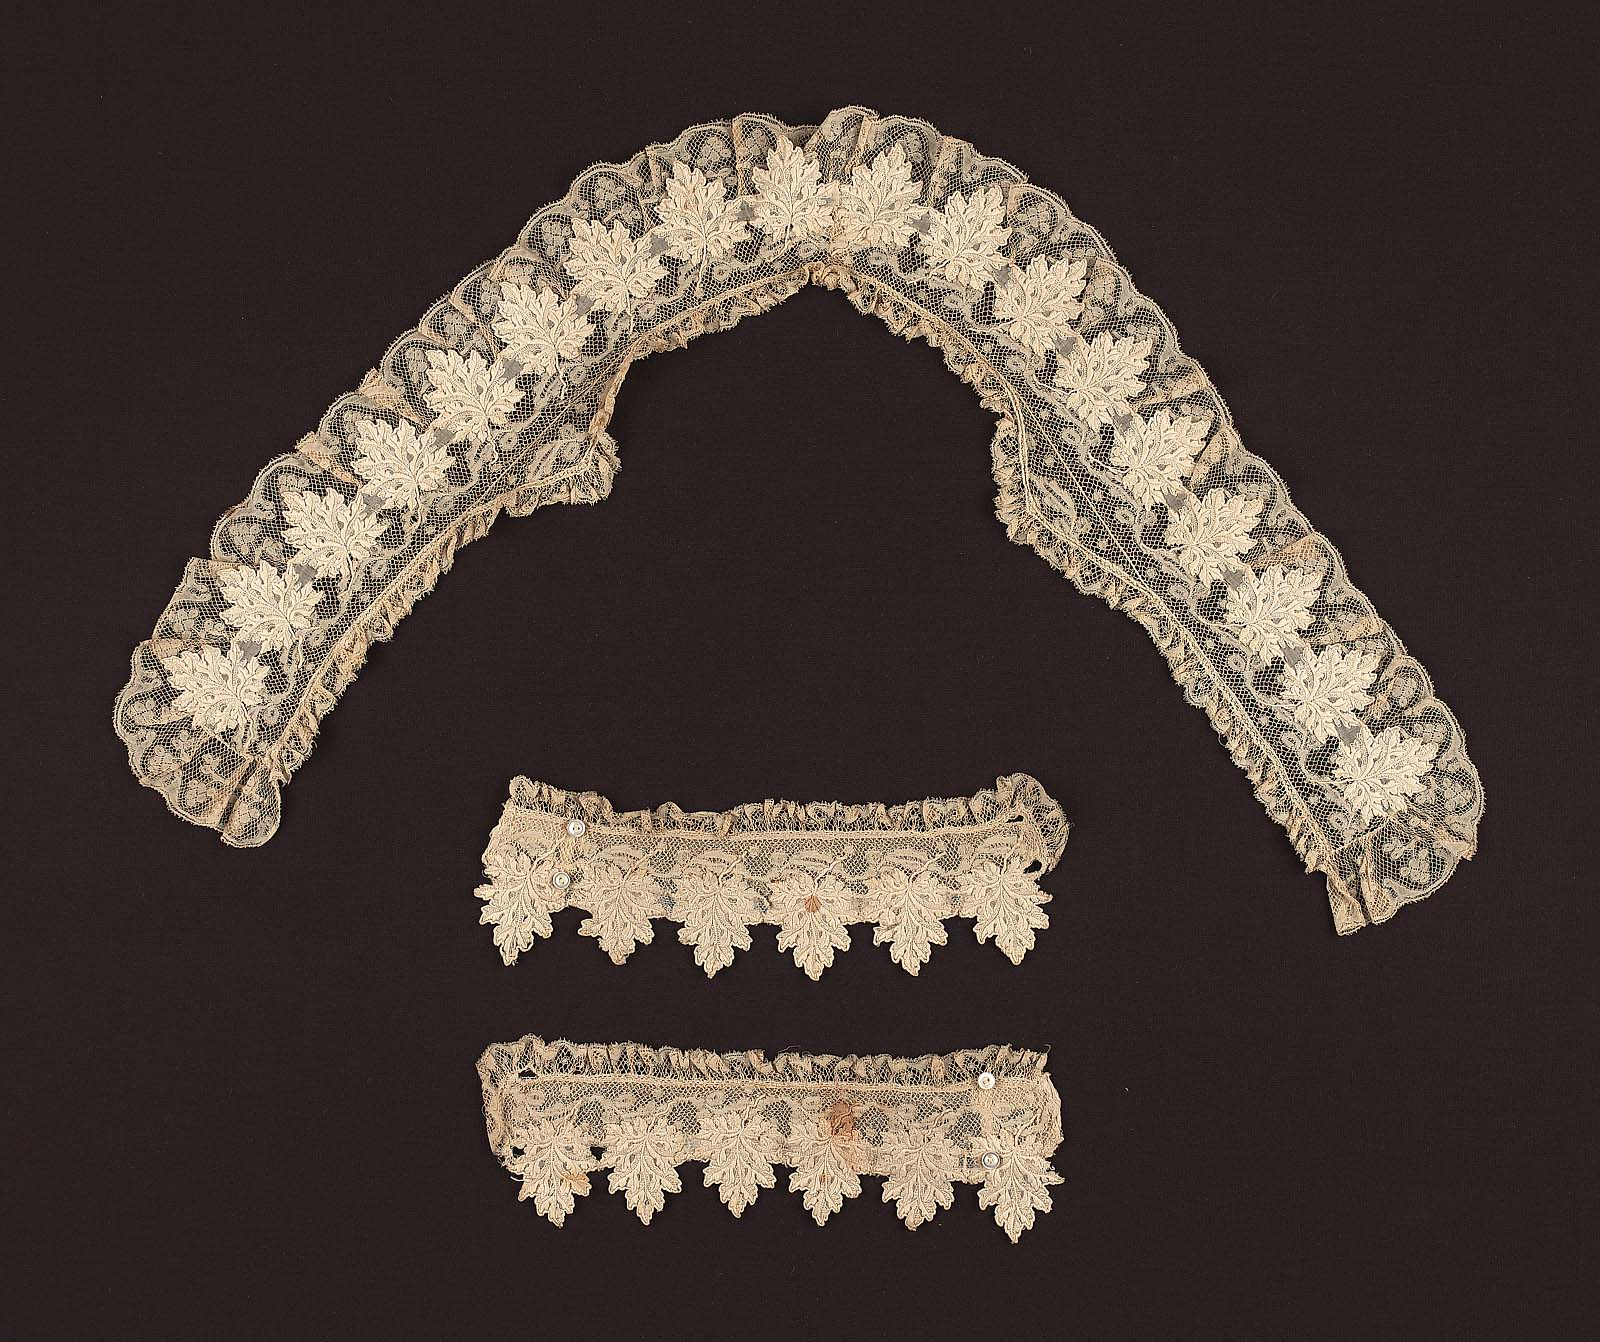 Collar And Pair Of Cuffs | Museum Of Fine Arts, Boston regarding Cuffs And Collars Boston